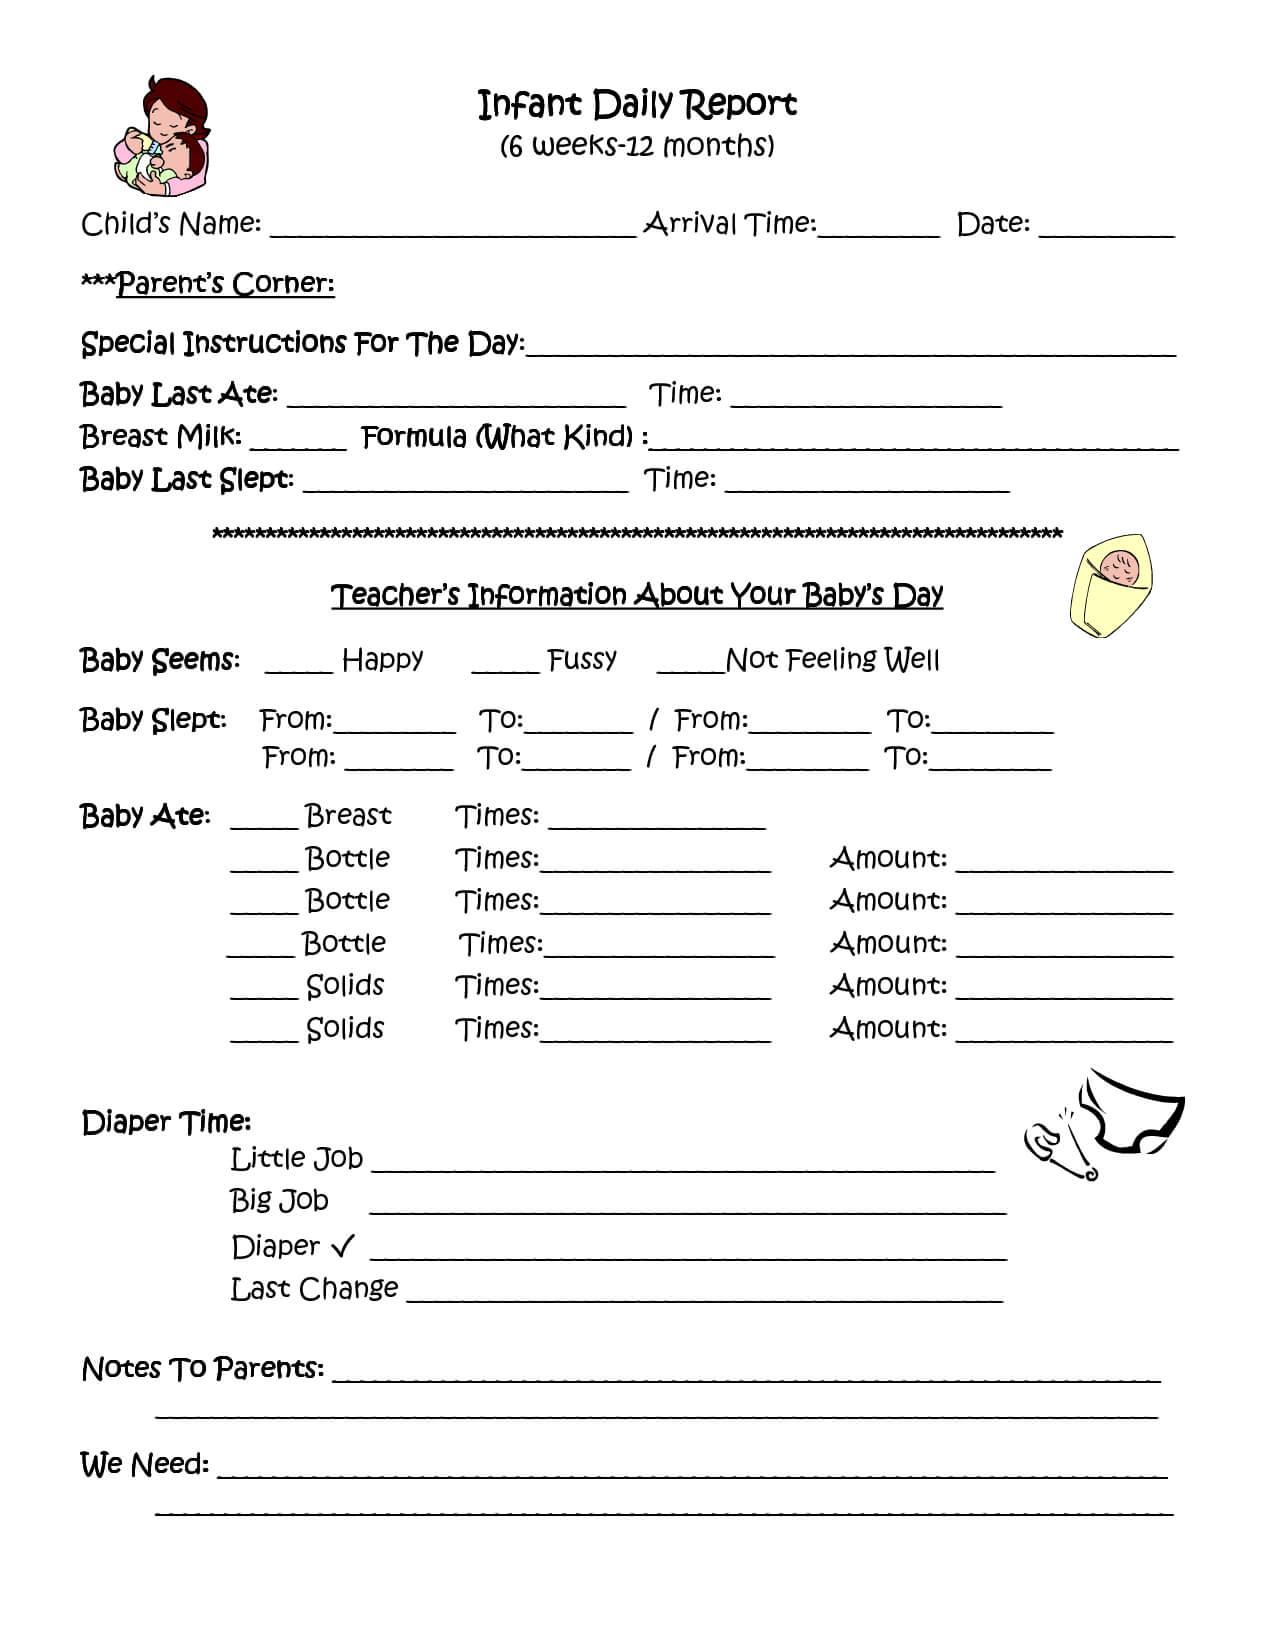 Infant Daily Report | Infant Daily Report, Daycare Forms Intended For Daycare Infant Daily Report Template